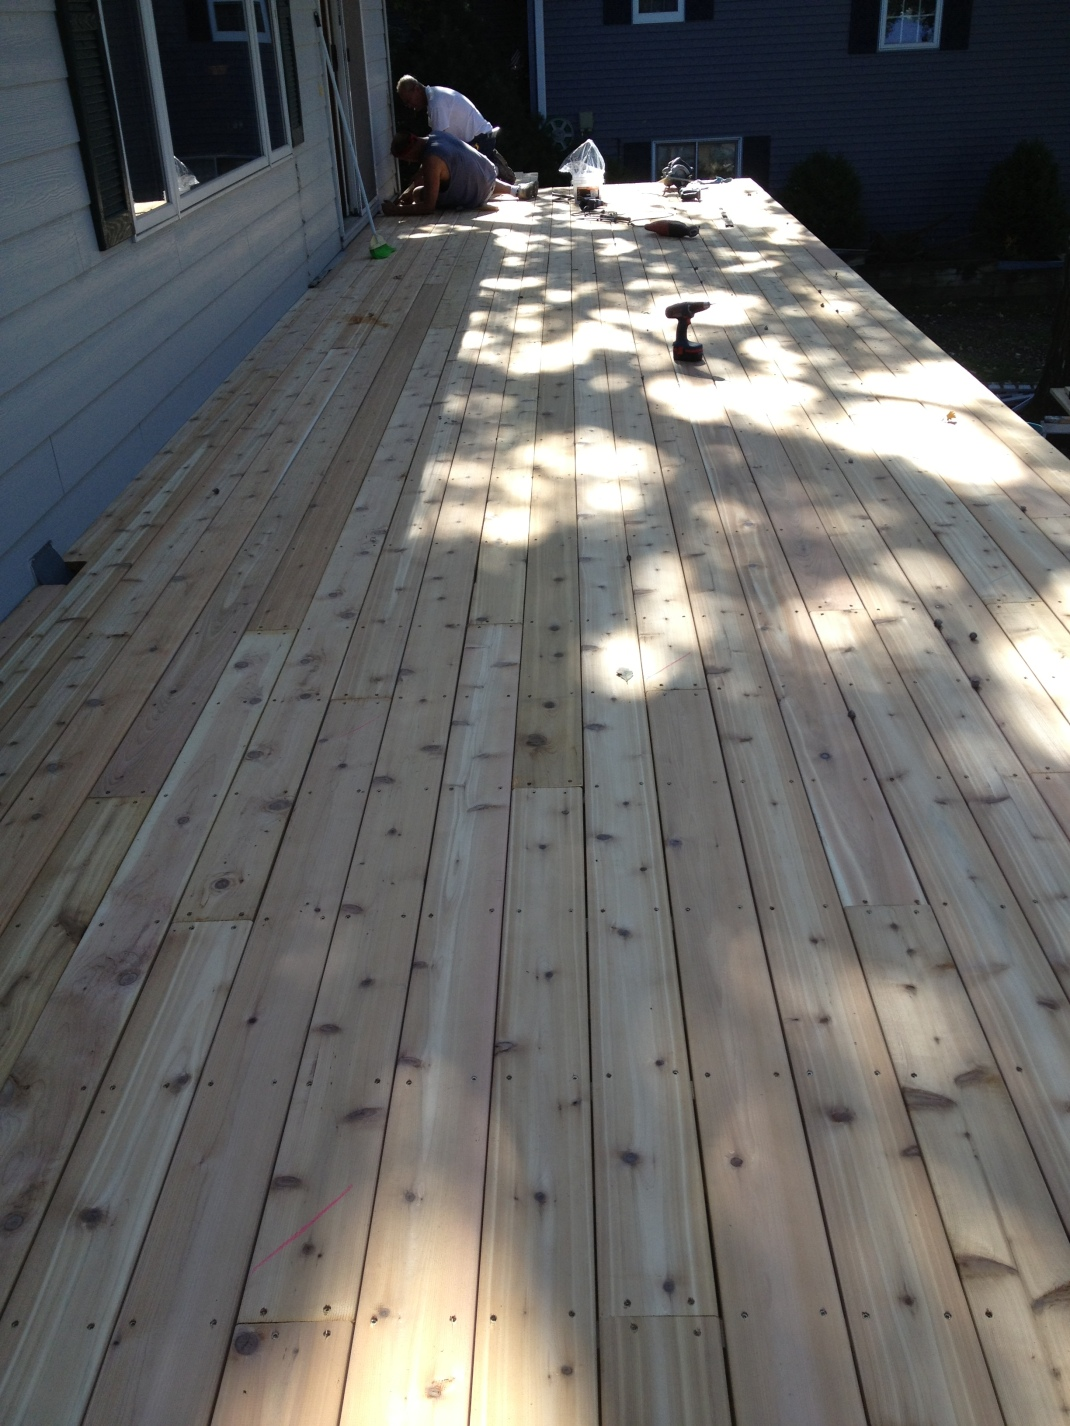 The New Decking is now in place. The cedar is so beautiful. I wish it would stay this way......